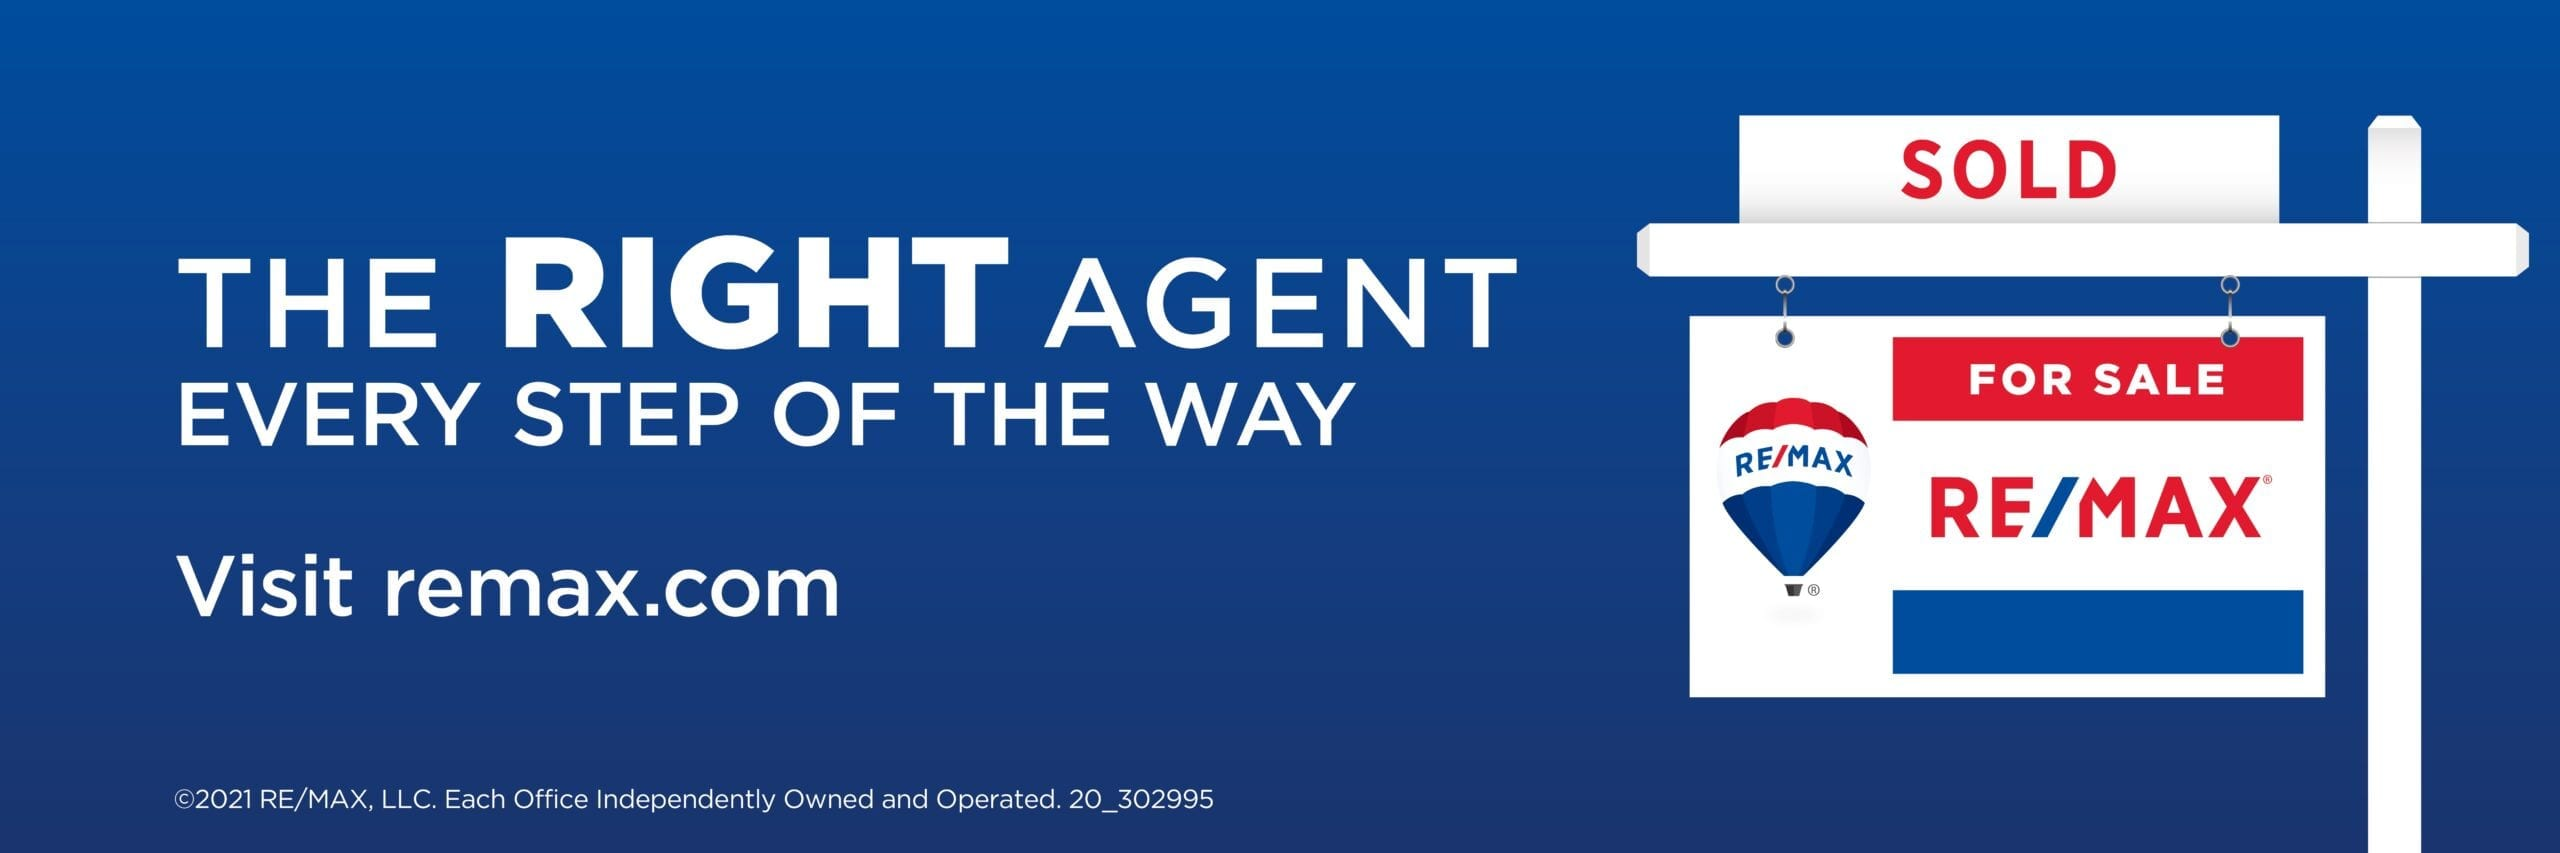 The right agent